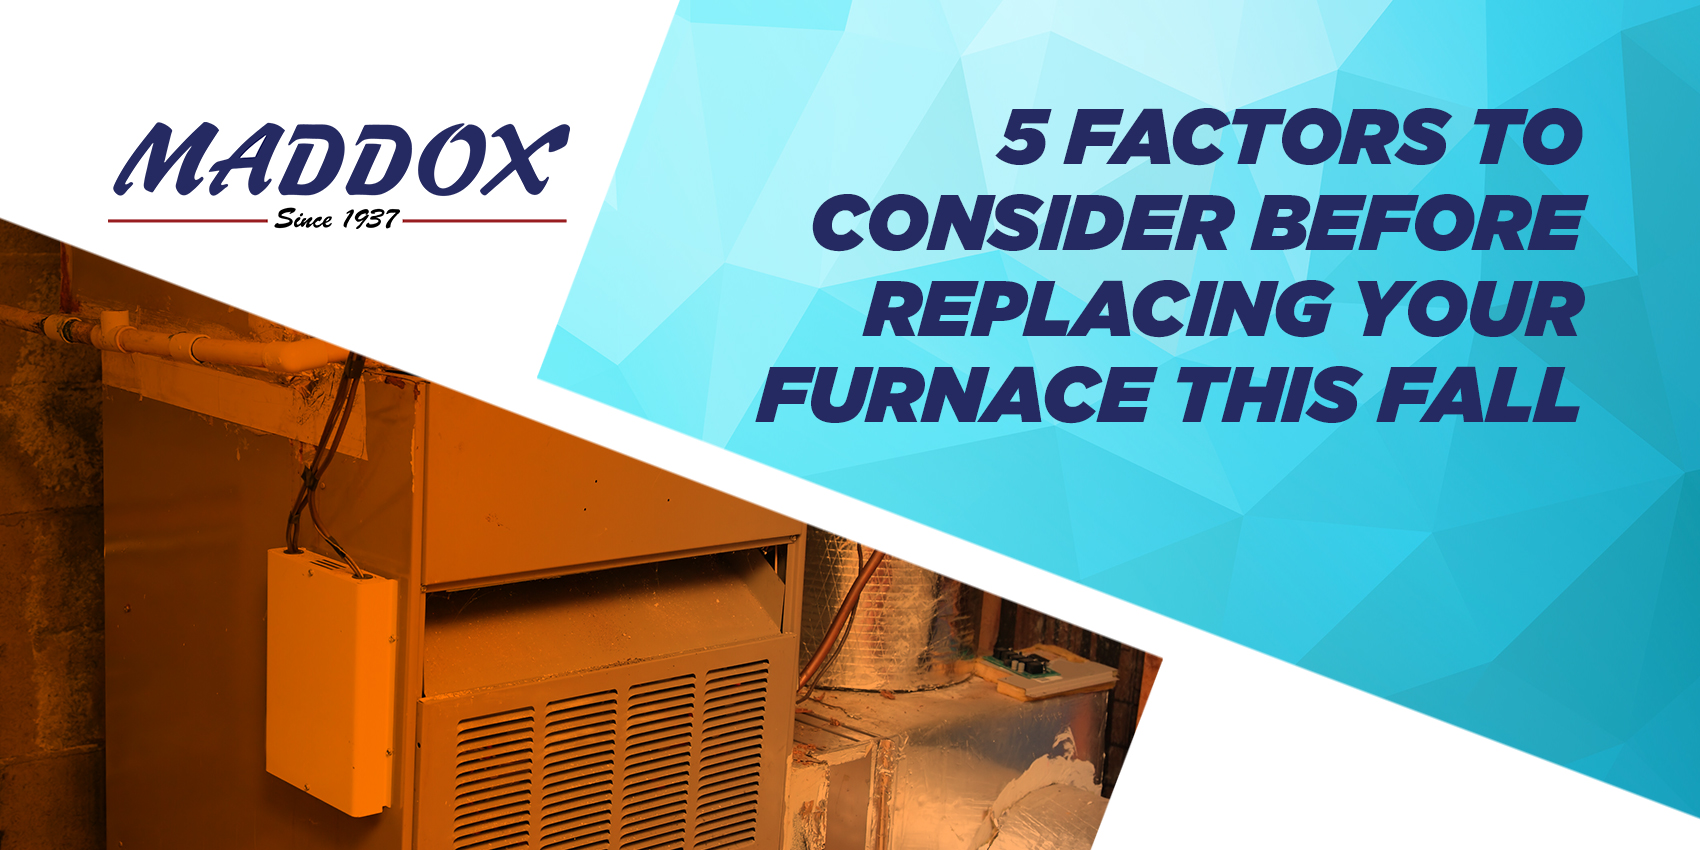 5 Factors to Consider Before Replacing Your Furnace This Fall